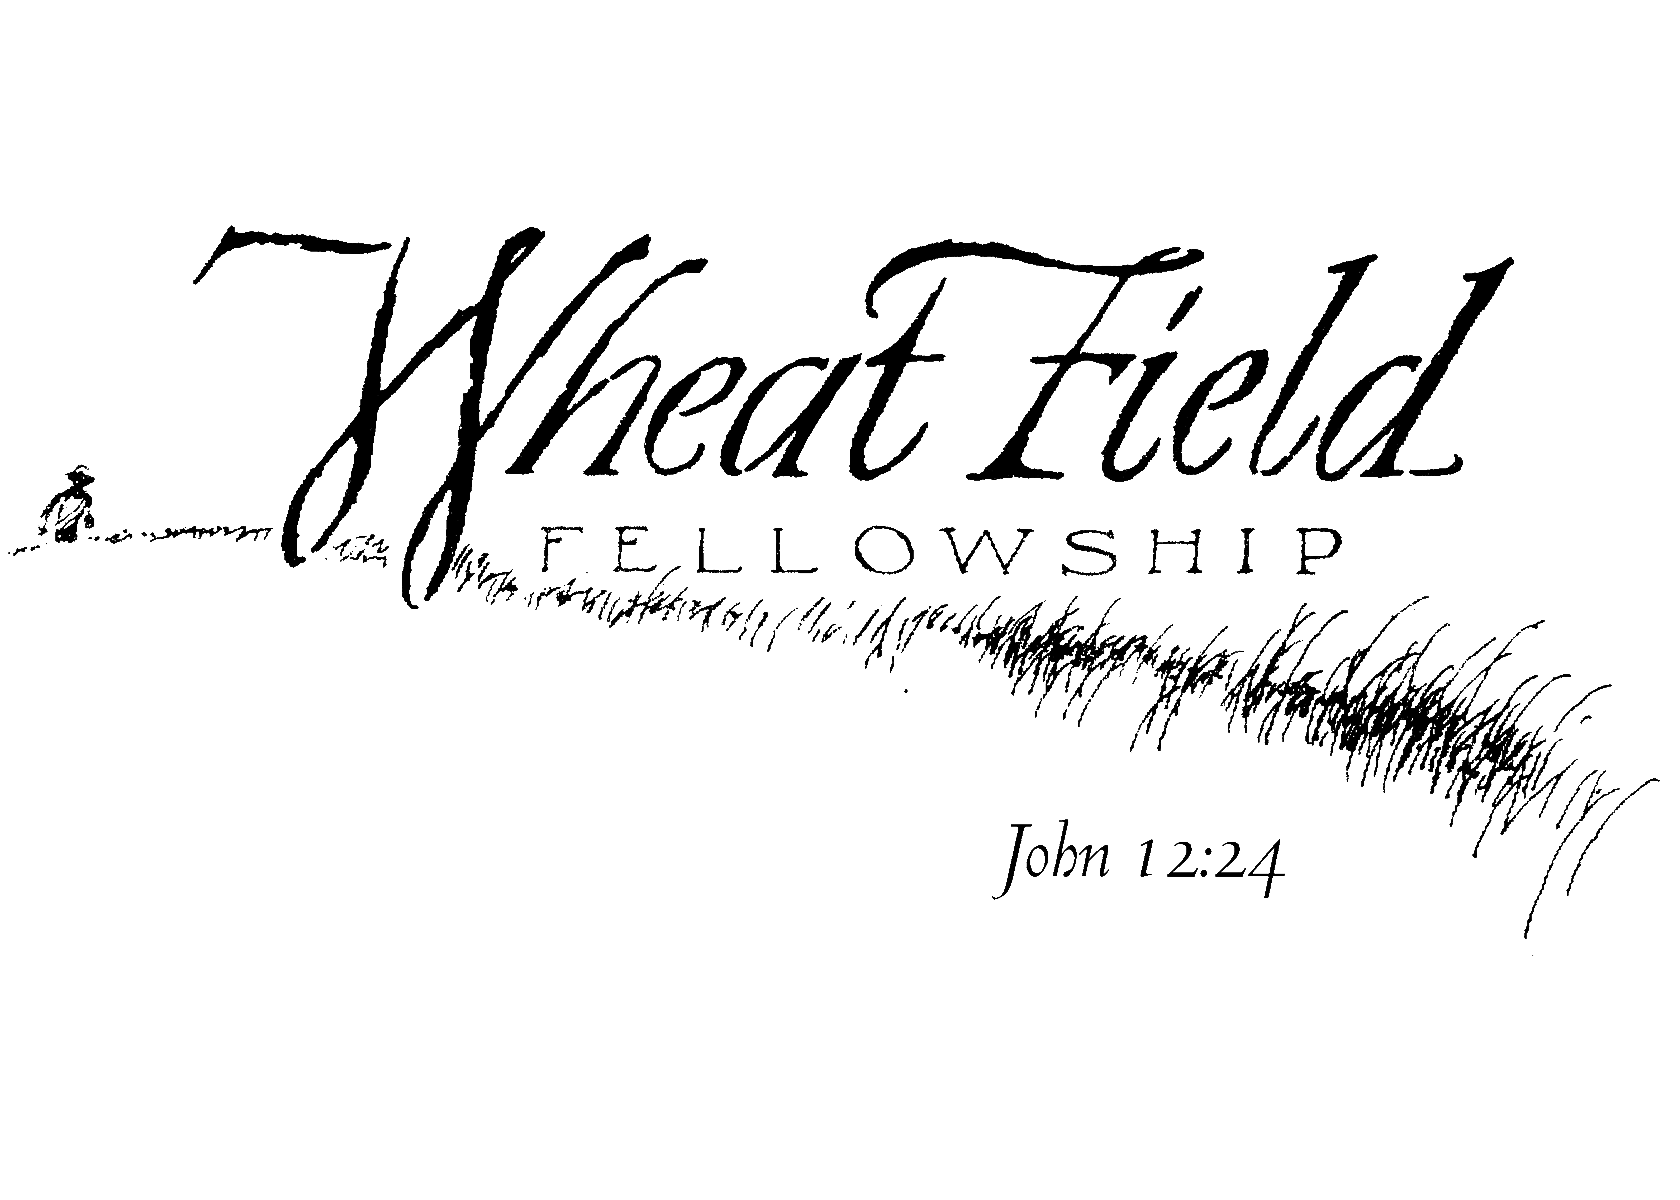 Field clipart wheatfield. Wheat fellowship logo image